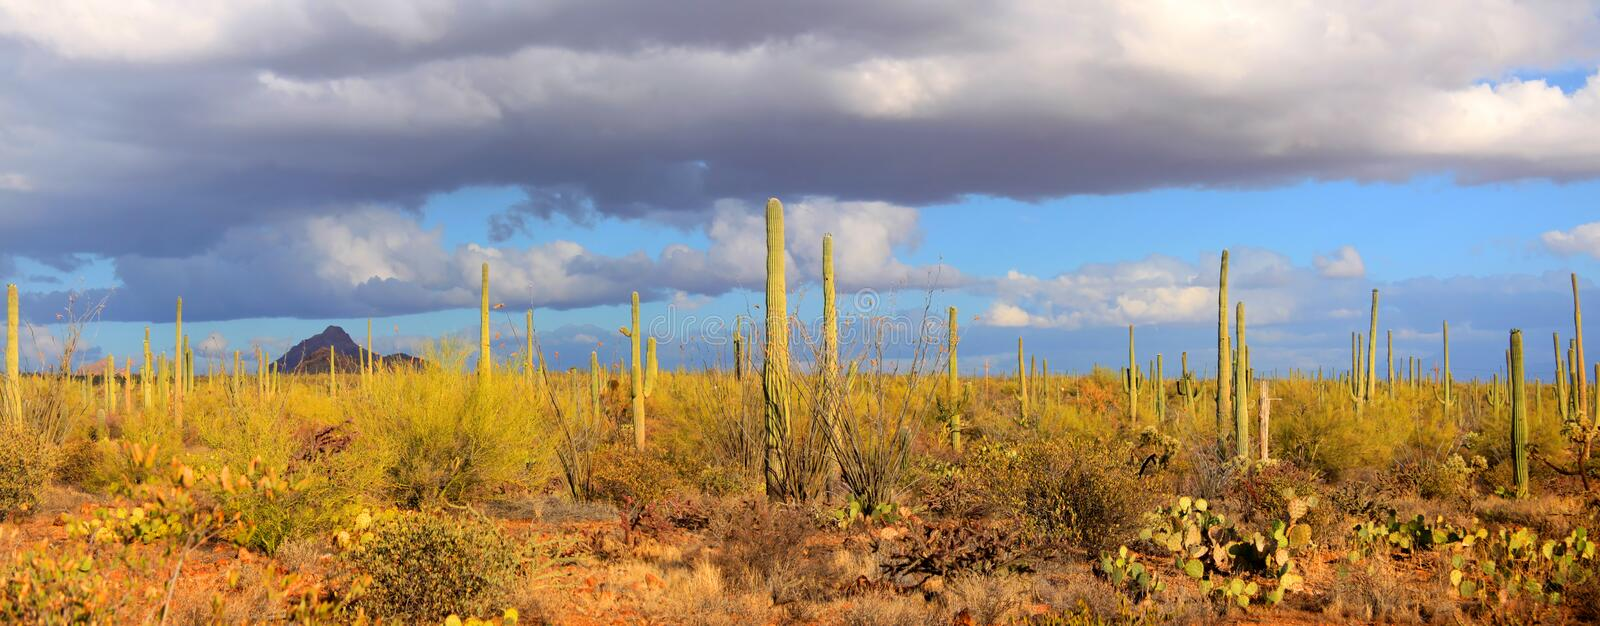 Parc national de Saguaro photo stock